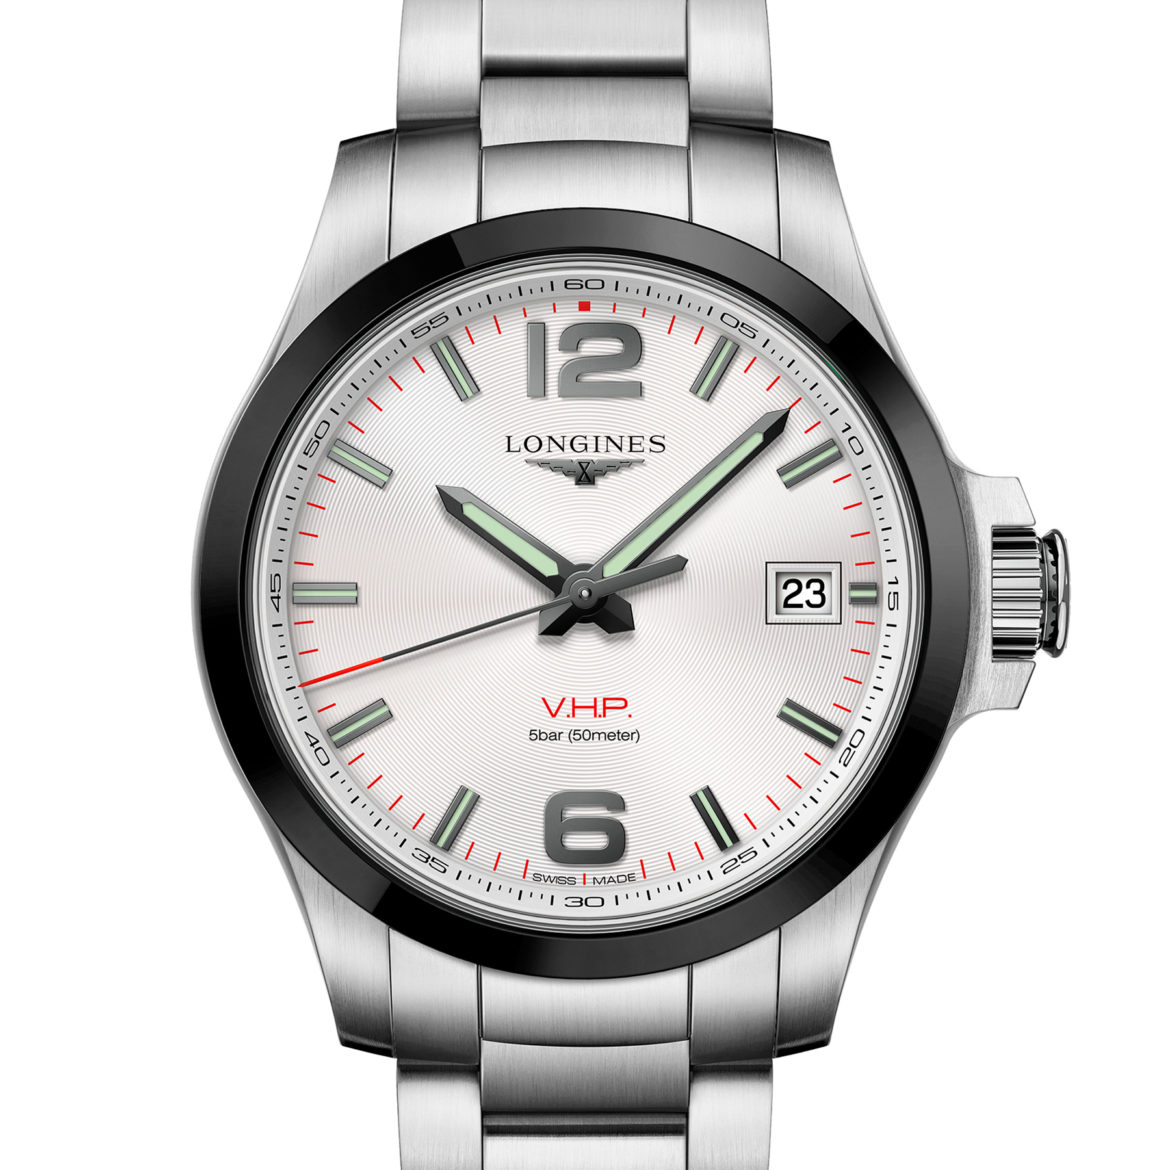 LONGINES</br/>Conquest VPH </br/>L37194766